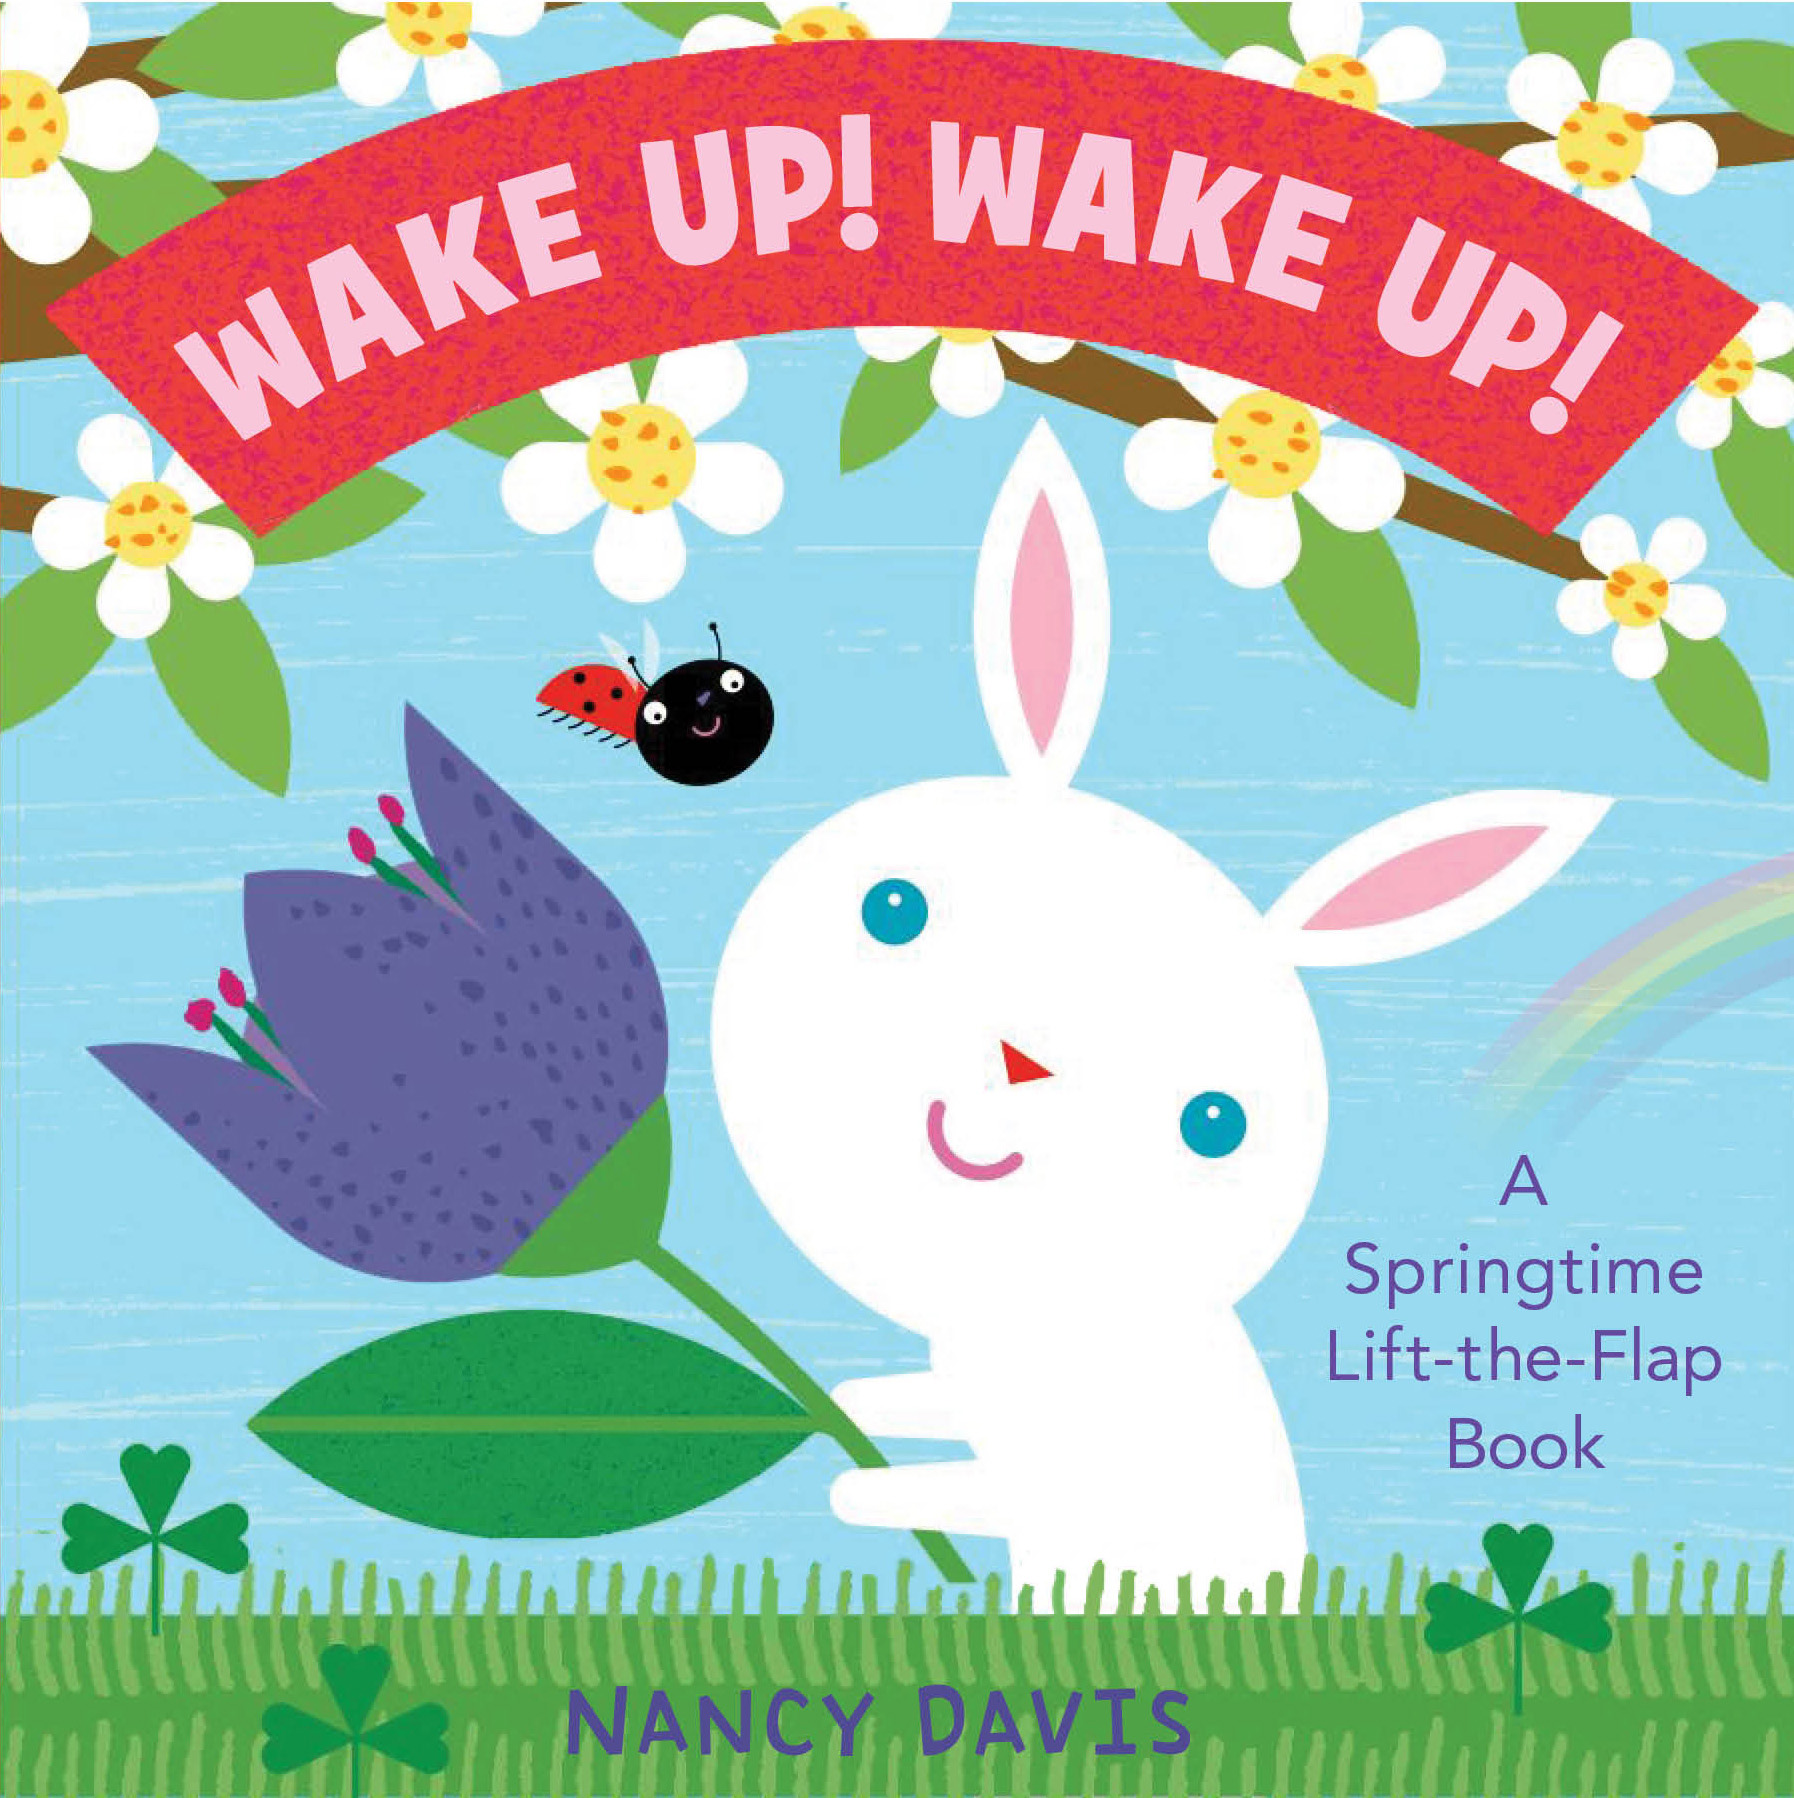 Wake Up! Wake Up!   Book by Kathryn Lynn Davis   Official ...